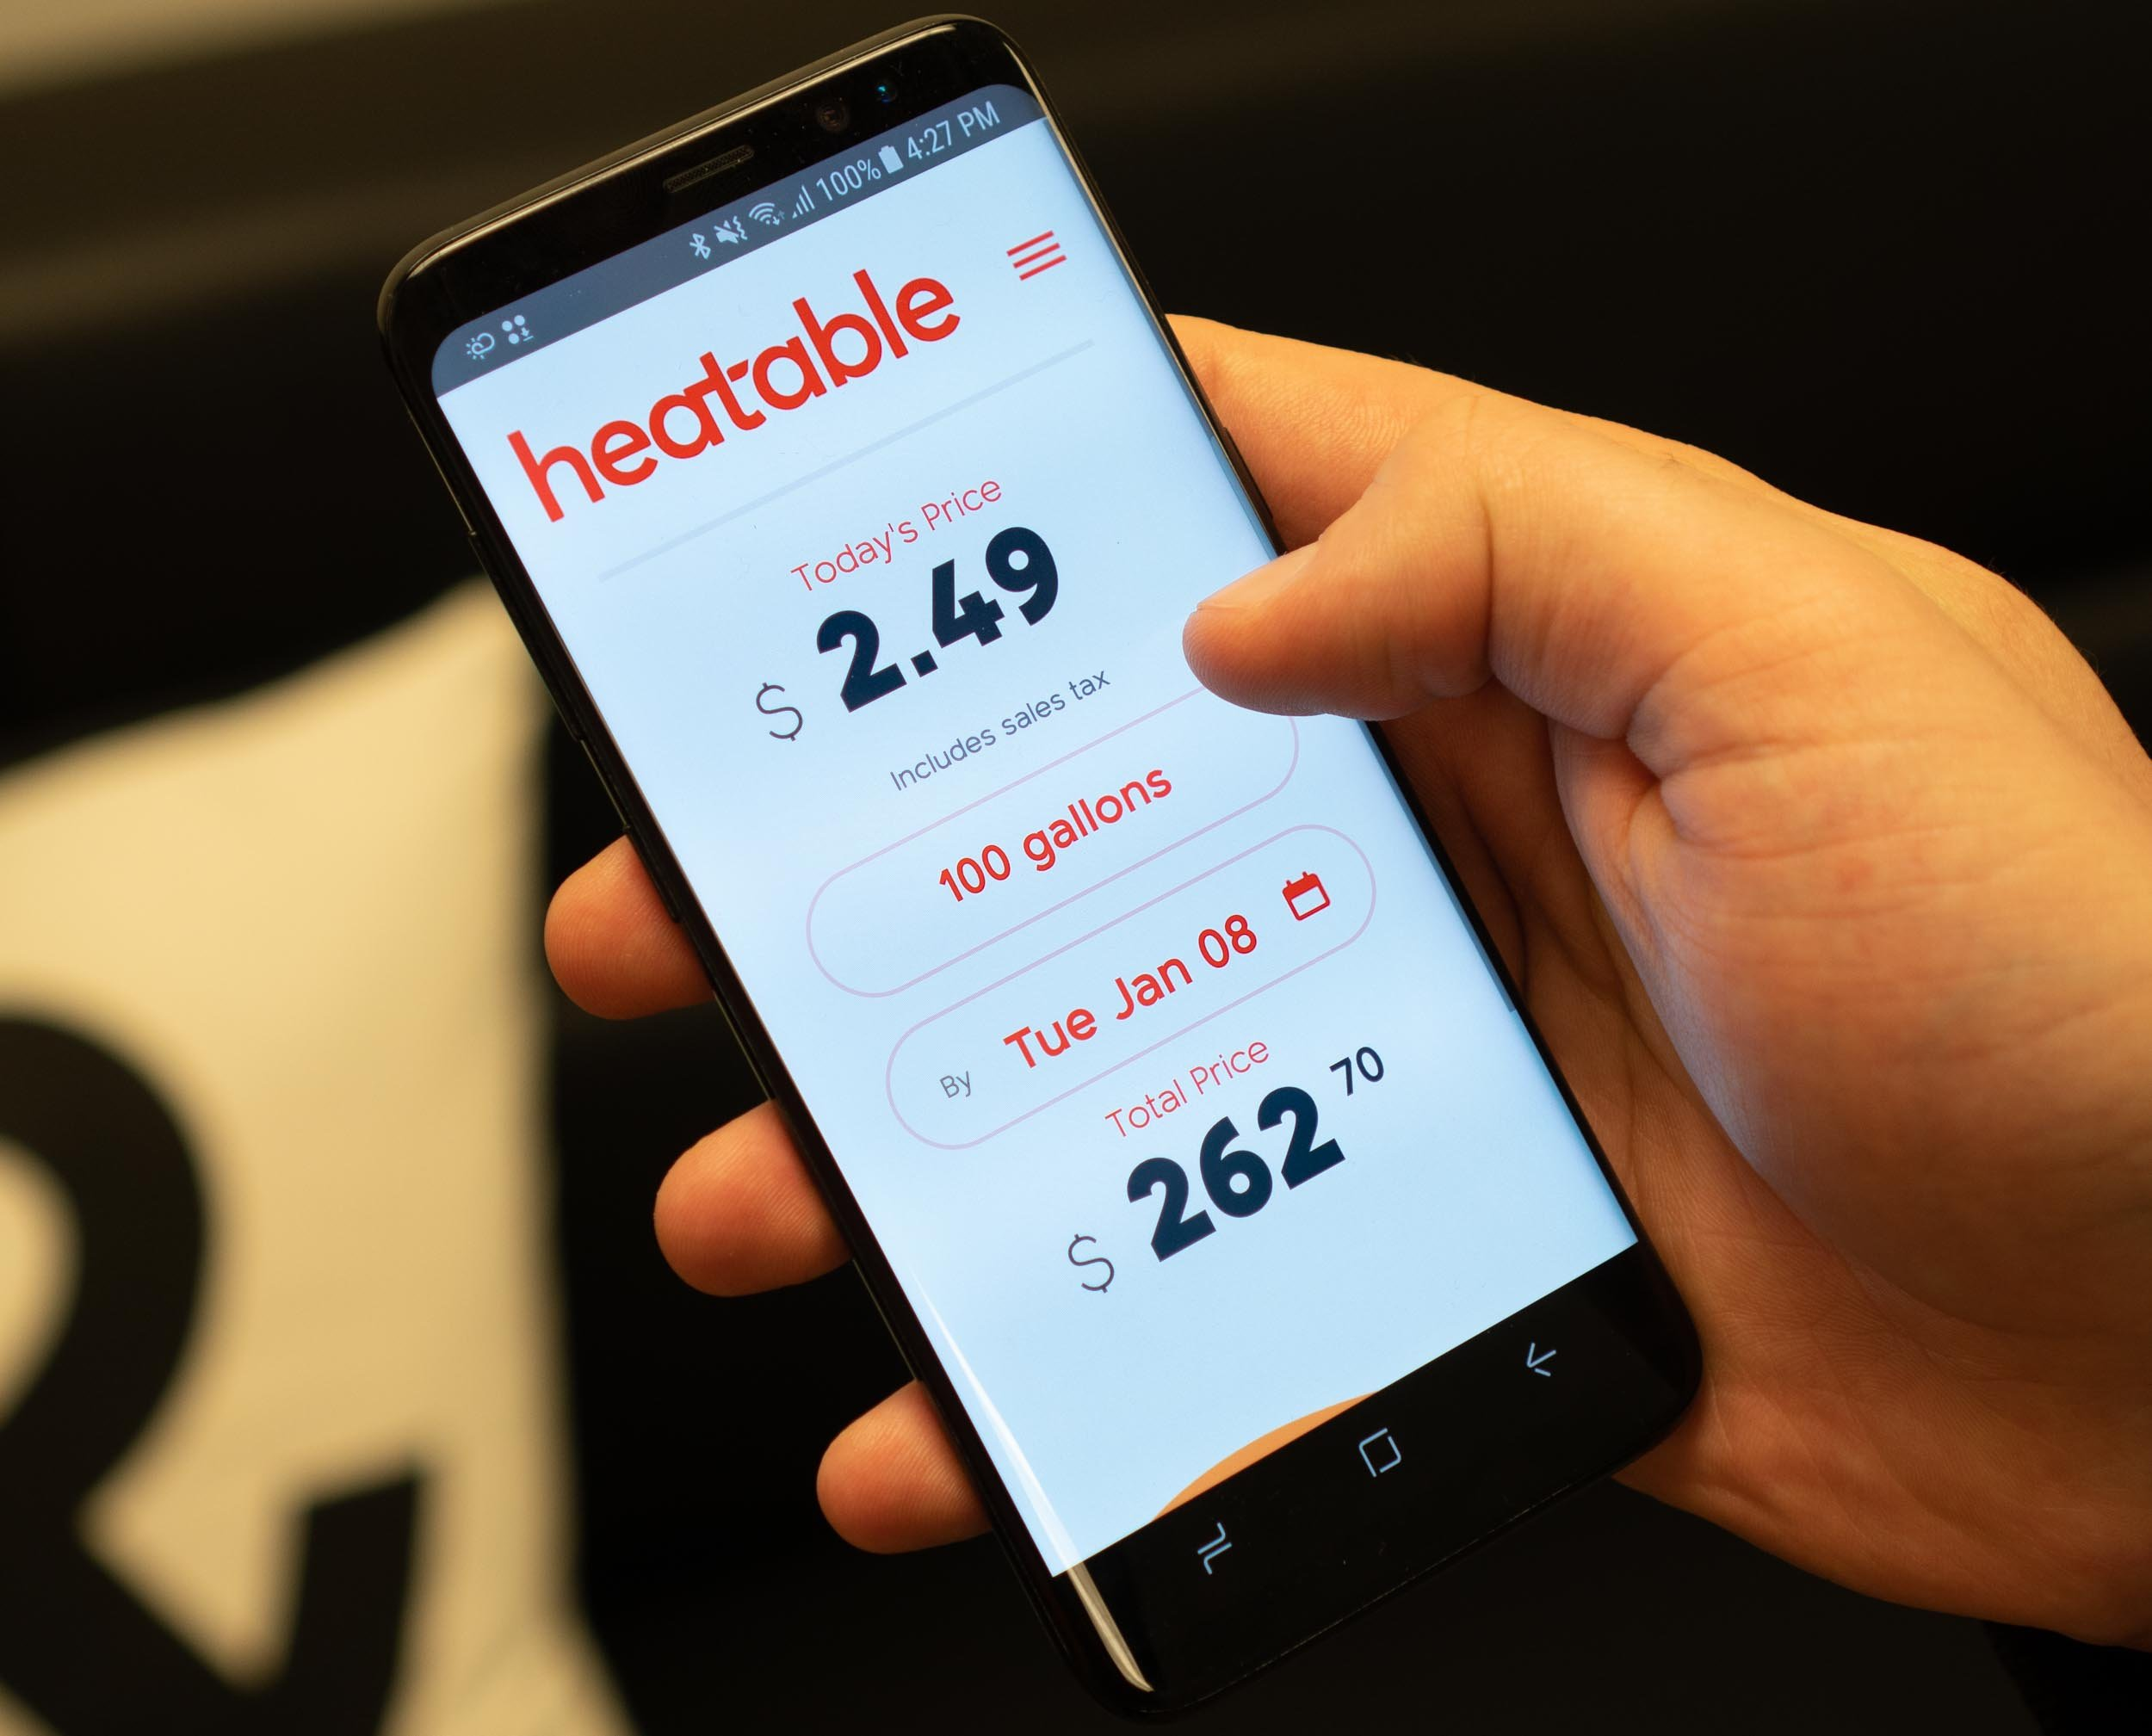 Heatable built in Xamarin for Android and iOS at AndPlus